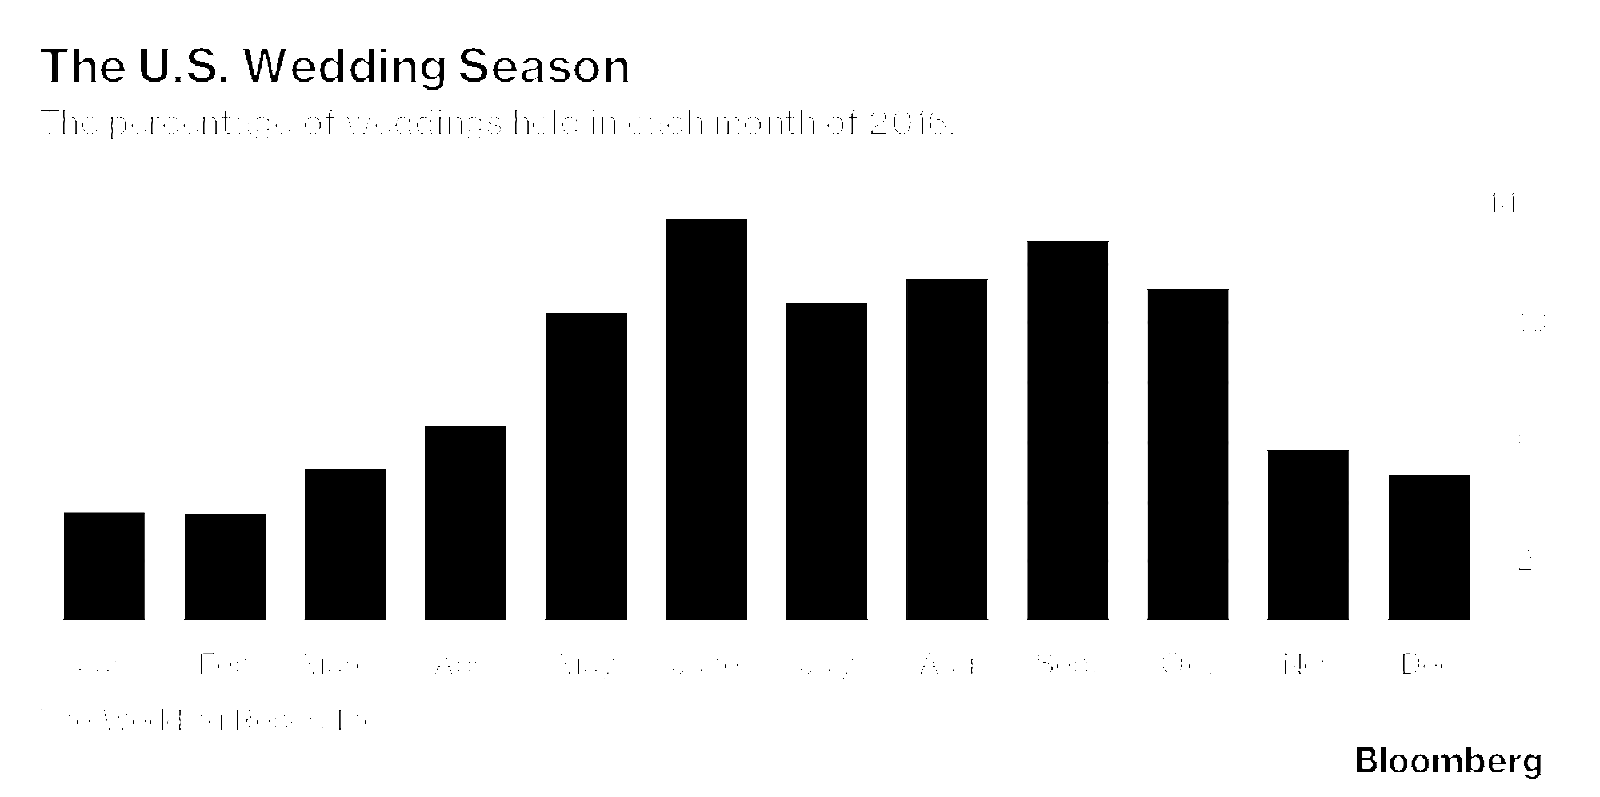 1600x-1.png